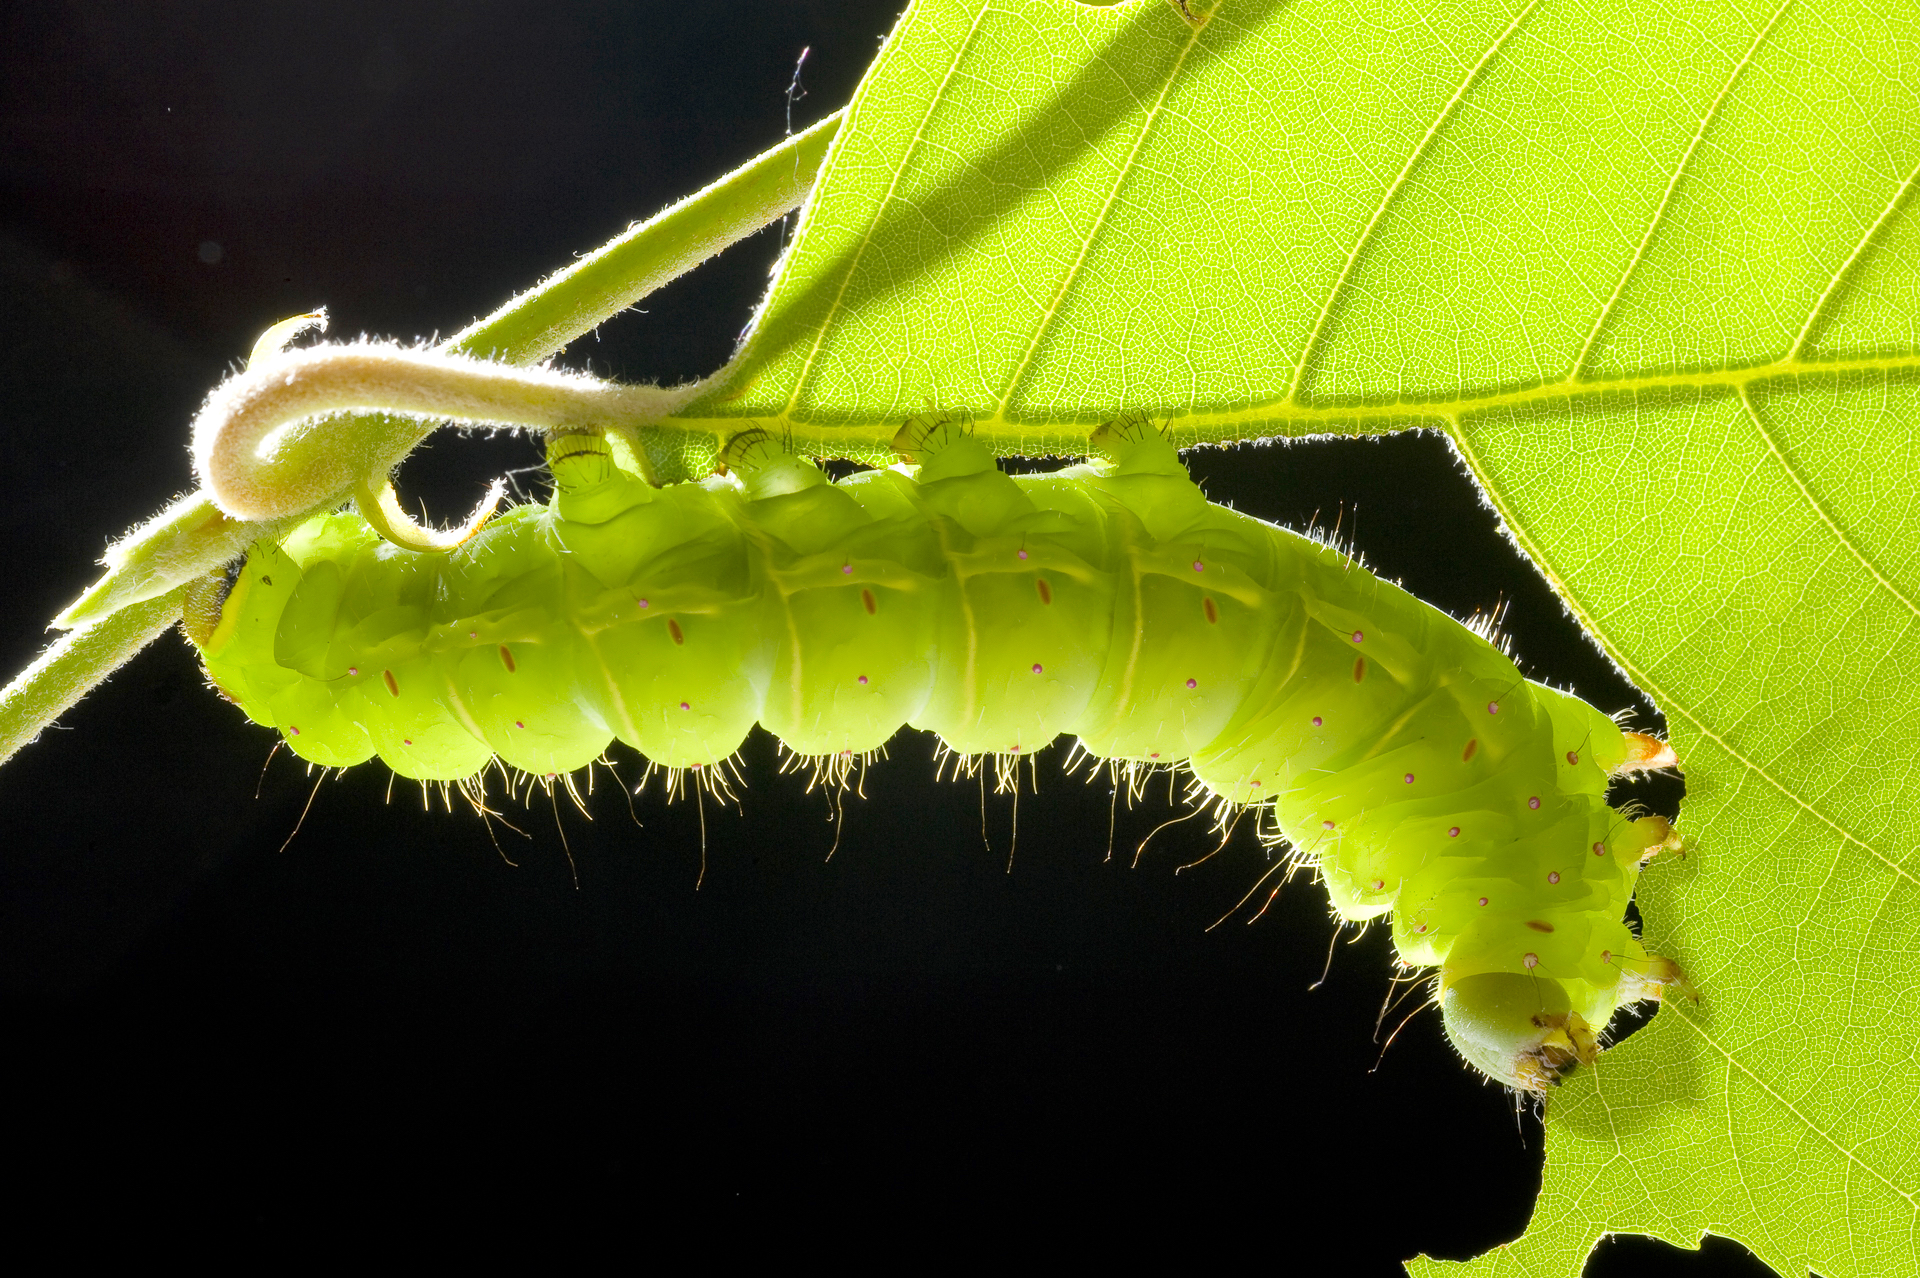 Luna moth caterpillar eating a birch leaf